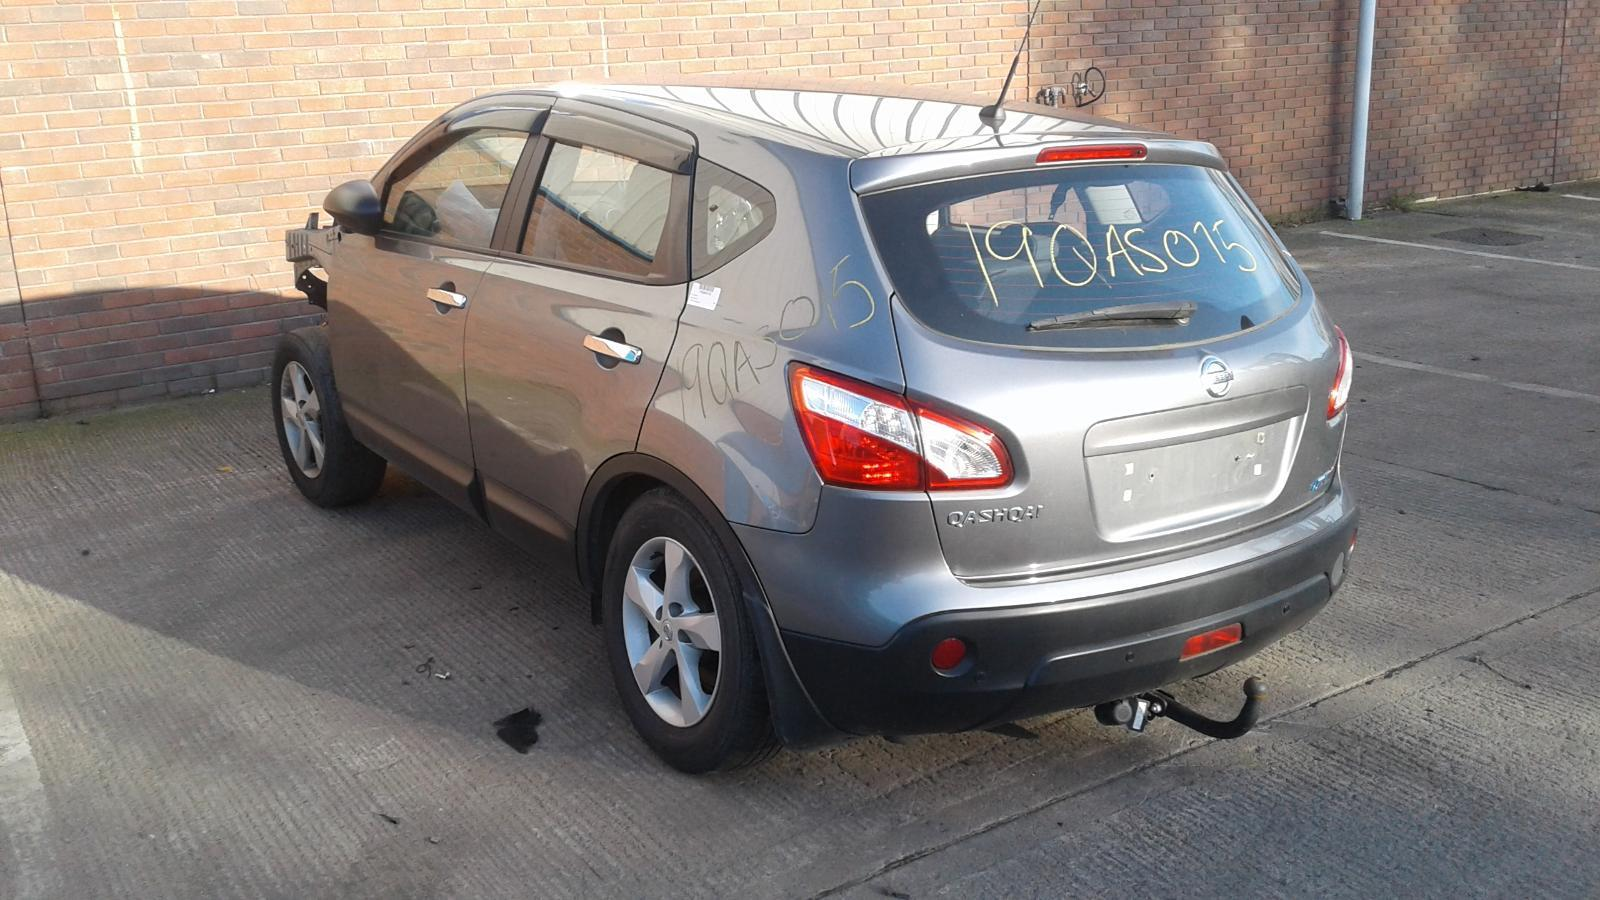 2012 NISSAN QASHQAI VISIA IS DCIS/S Image